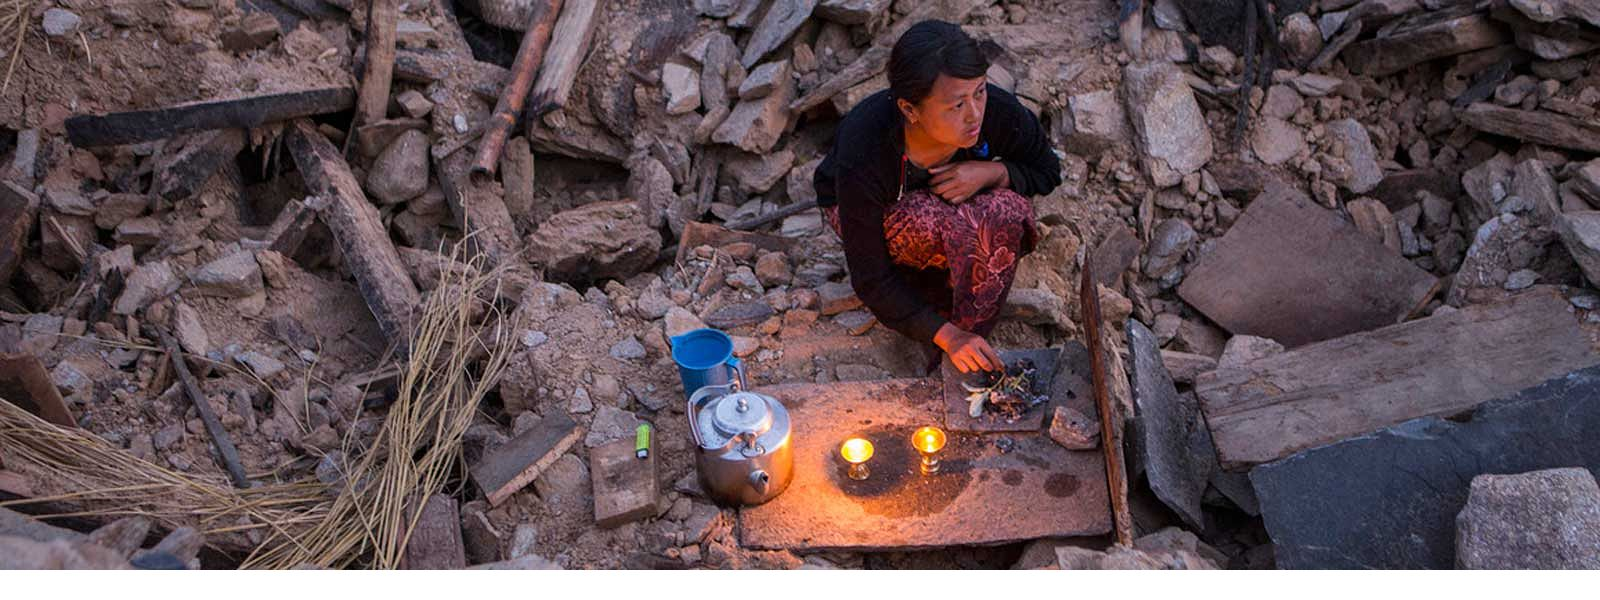 A woman lights candles in the ruins of her home after the Nepal earthquake